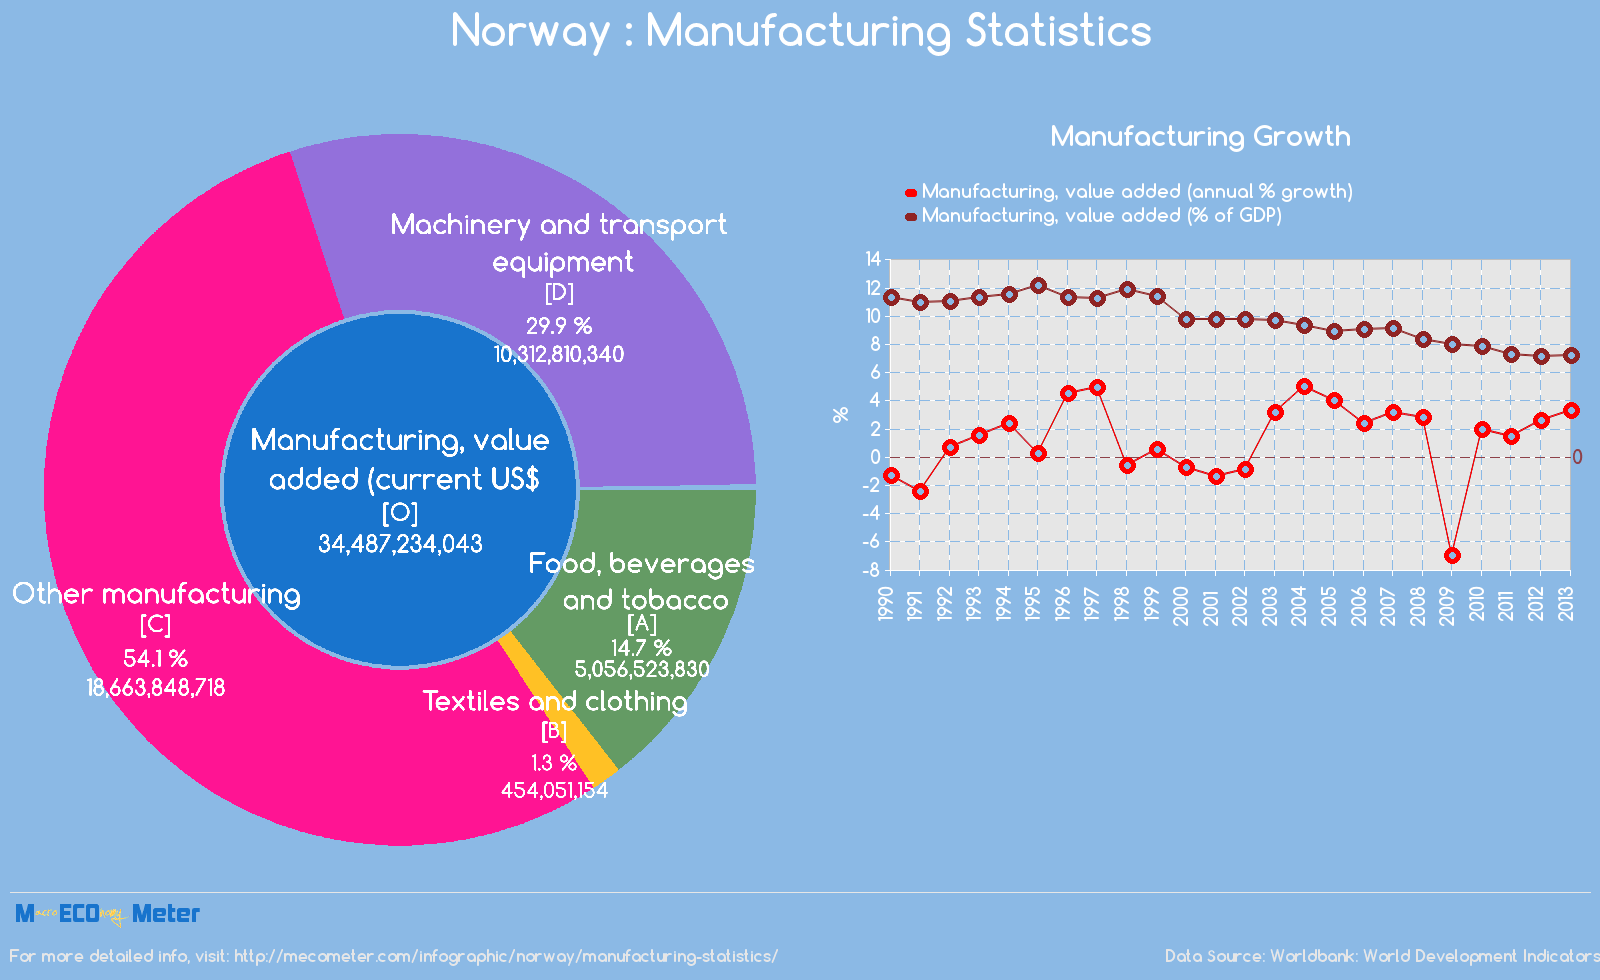 Norway : Manufacturing Statistics